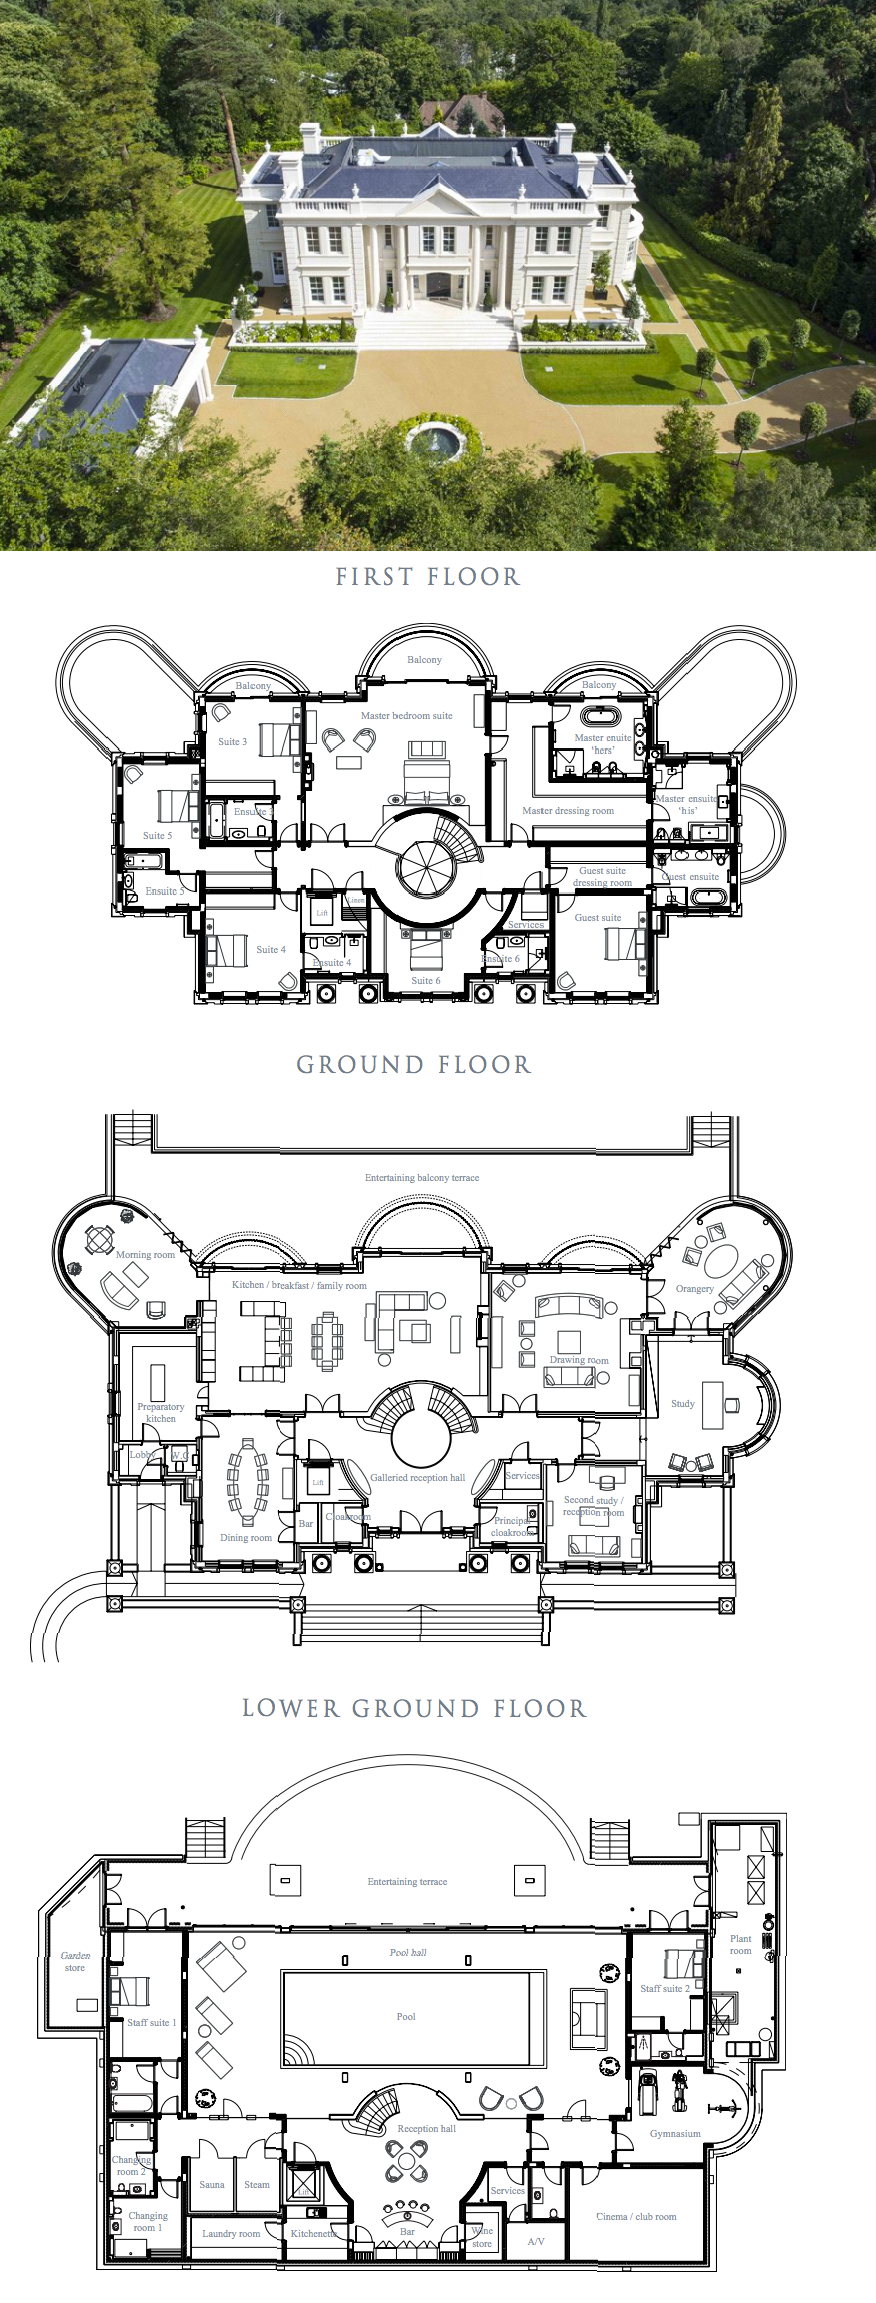 The Ramparts A Stately Newly Built Mansion In Surrey England Floor Plans House Plans Mansion Luxury House Plans Mansion Designs